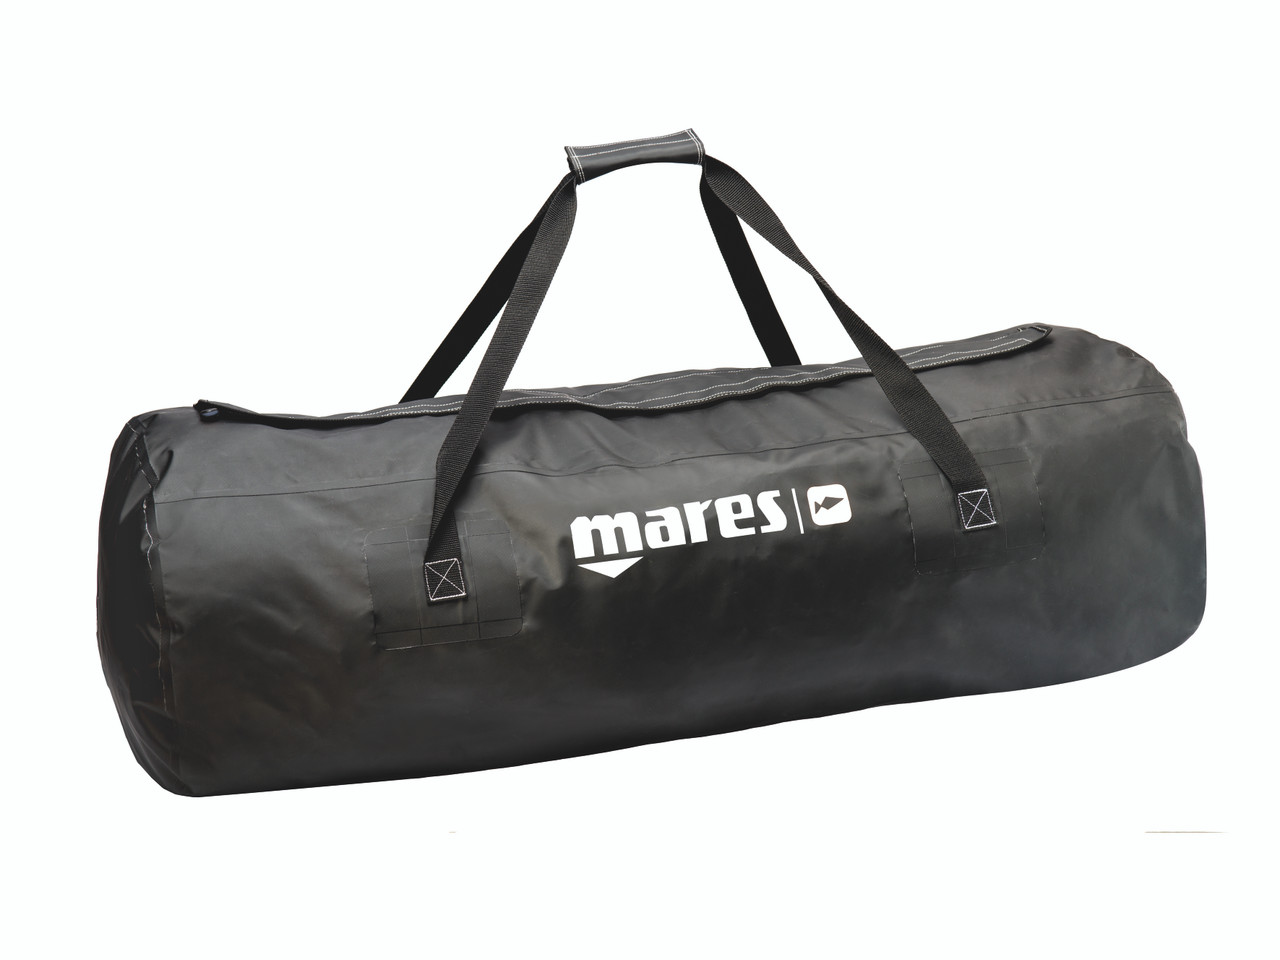 Mares Attack 100 Bag Duffle Gear Spearfishing Bag 425560